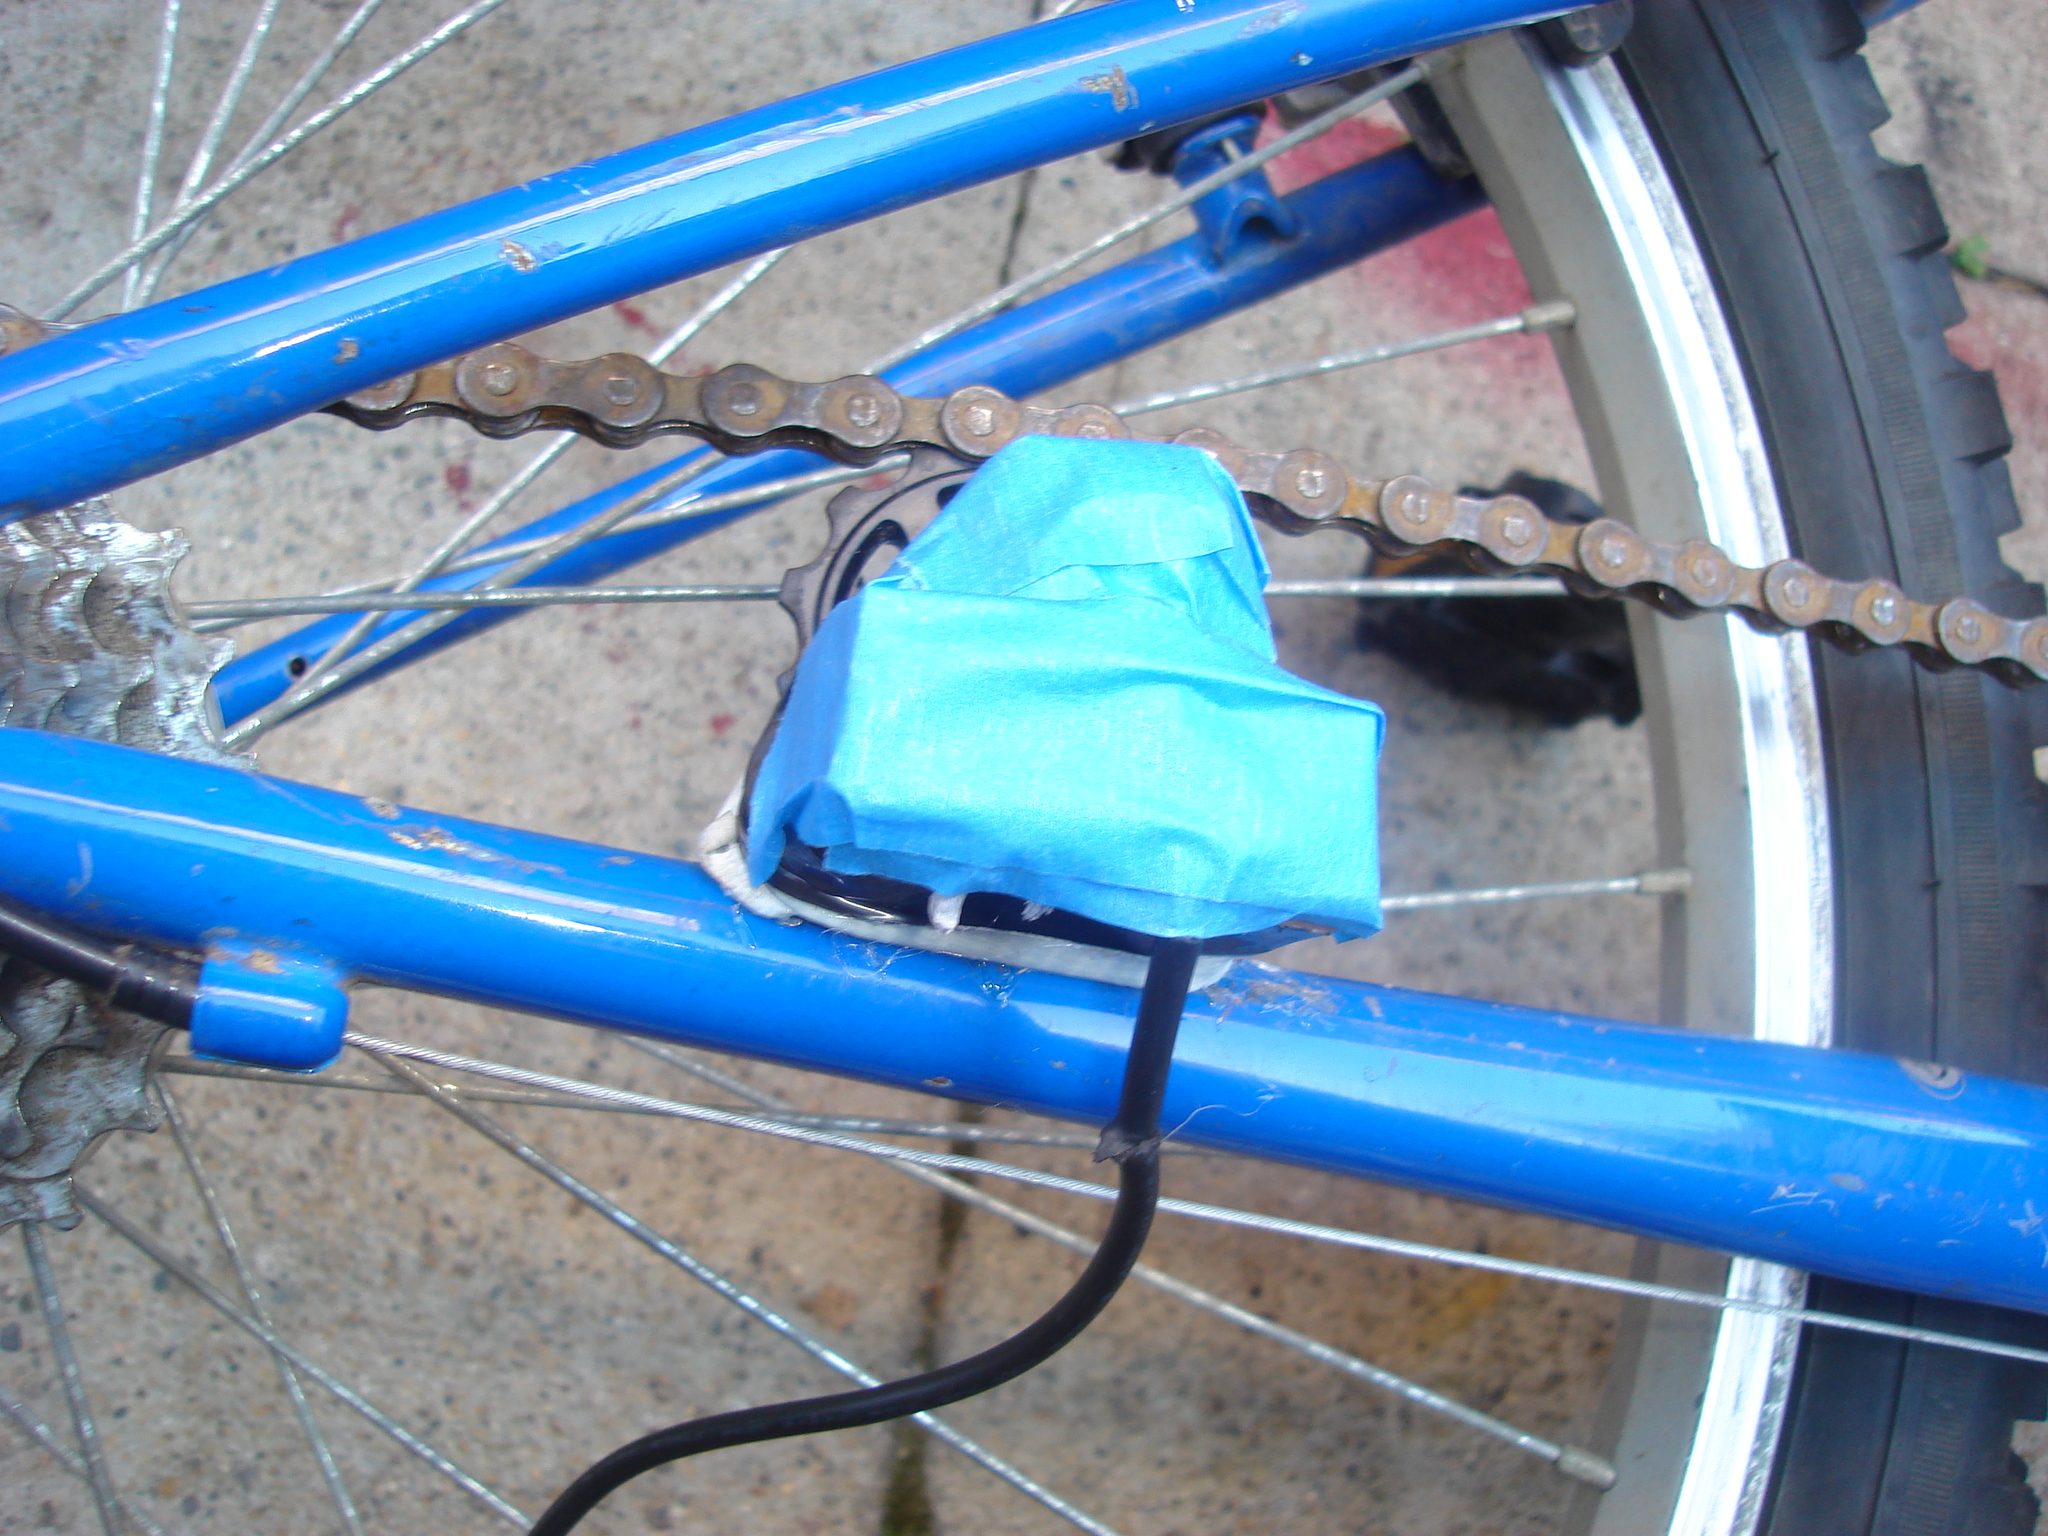 Bike that charges your cell phone as you ride!